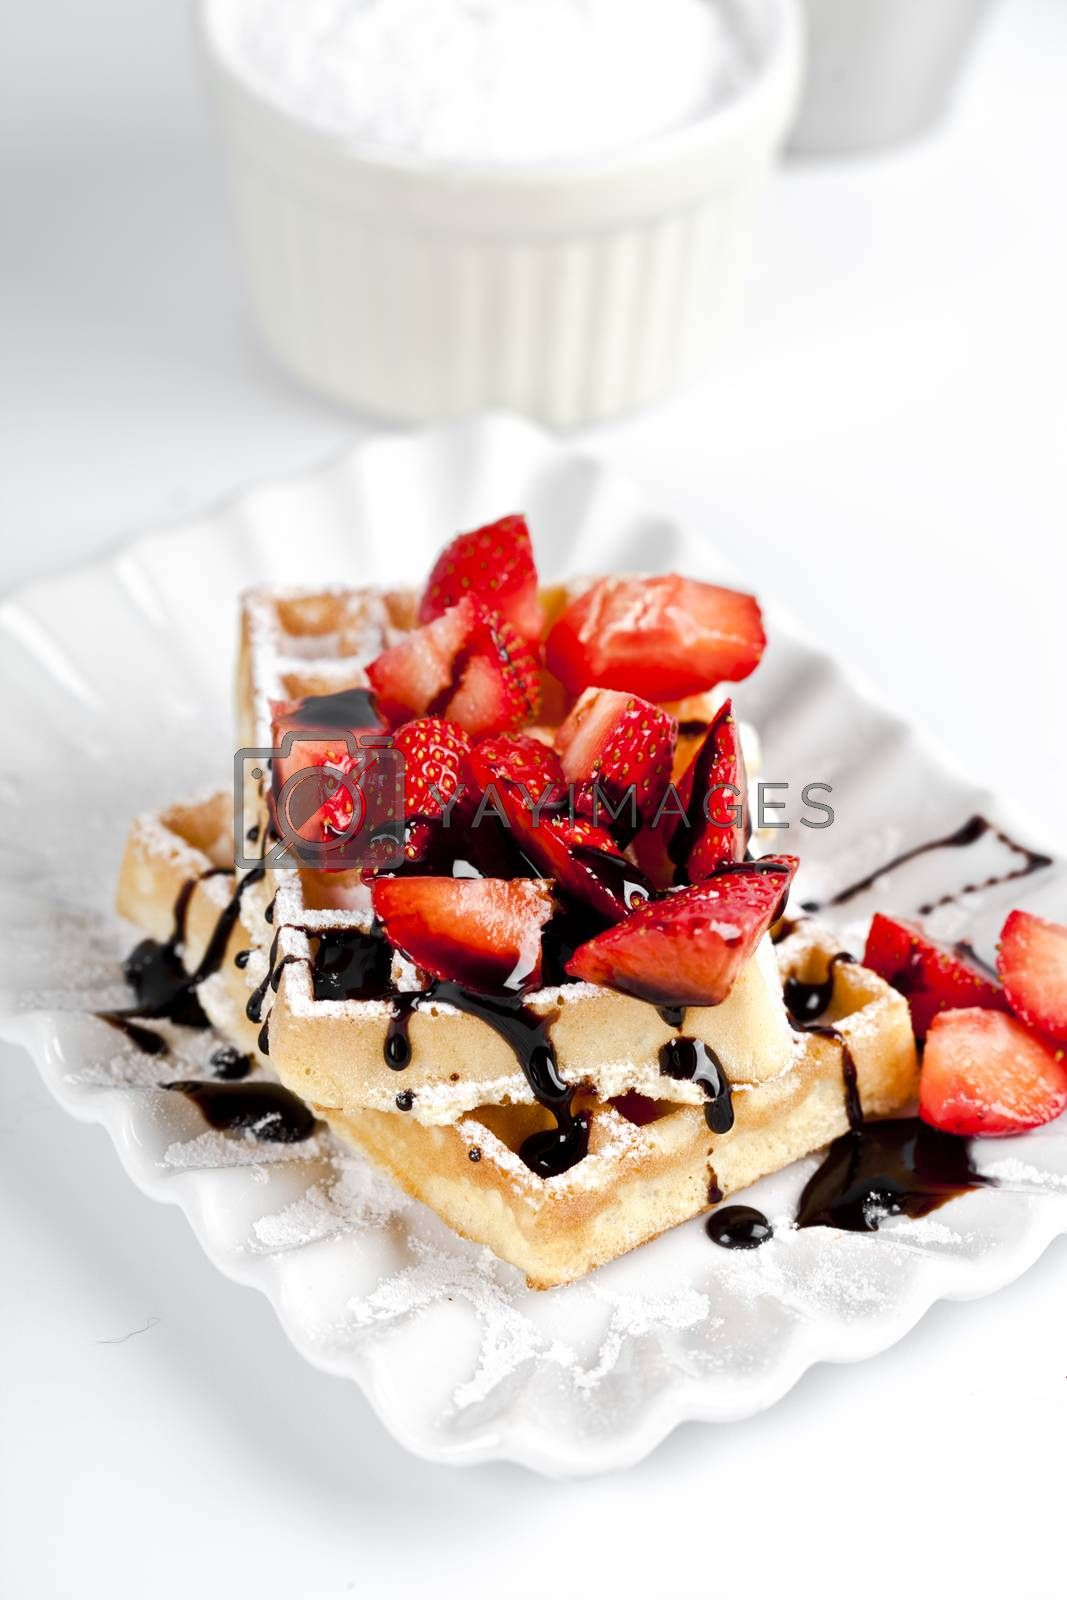 Belgium waffers with sugar powder, strawberries and chocolate on ceramic plate on white table. Fresh baked wafers with copy space.